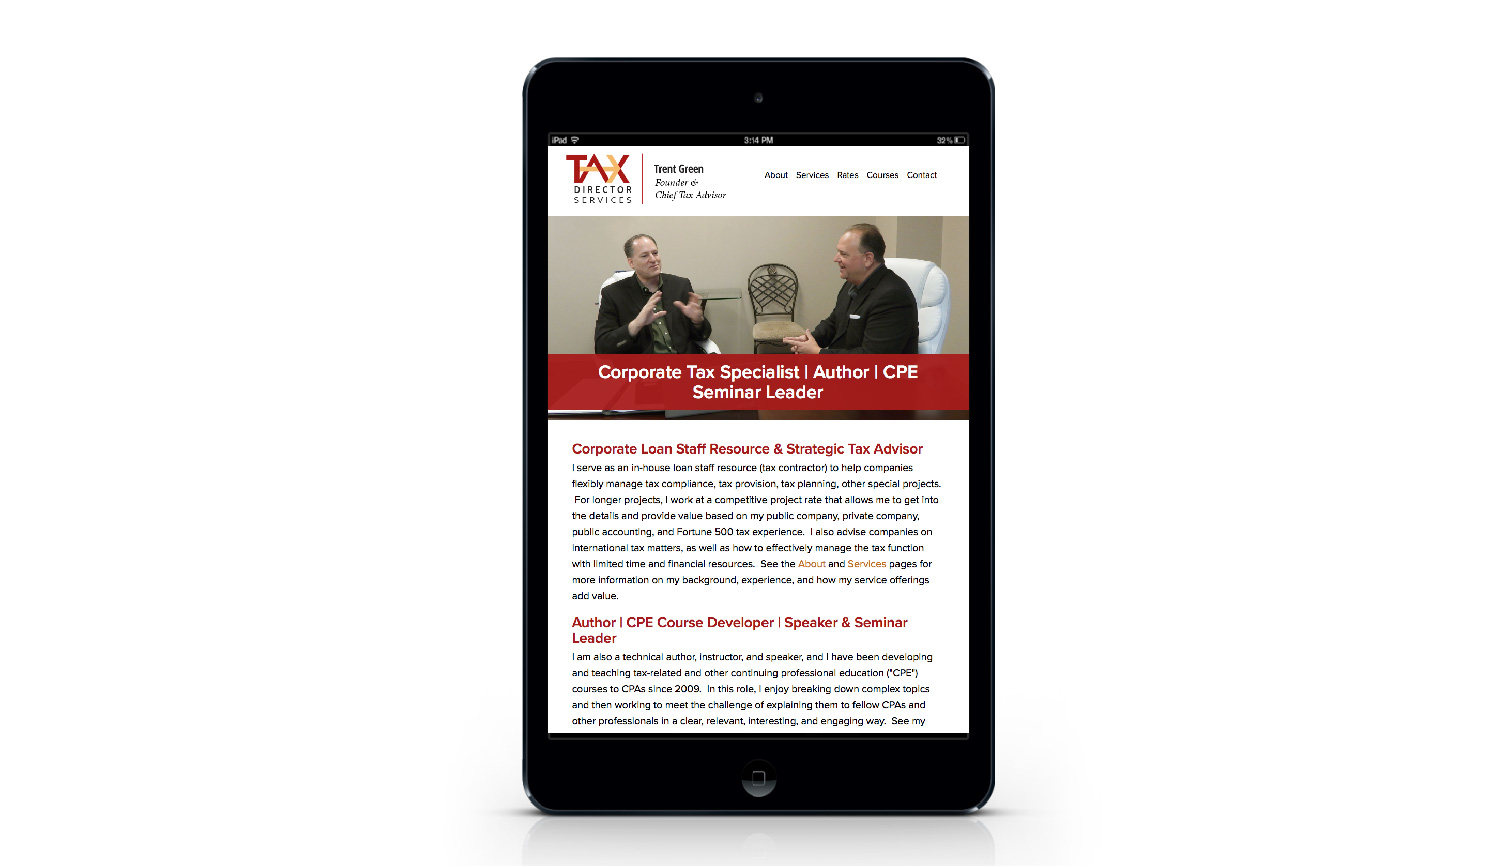 Tax Director Services tablet view